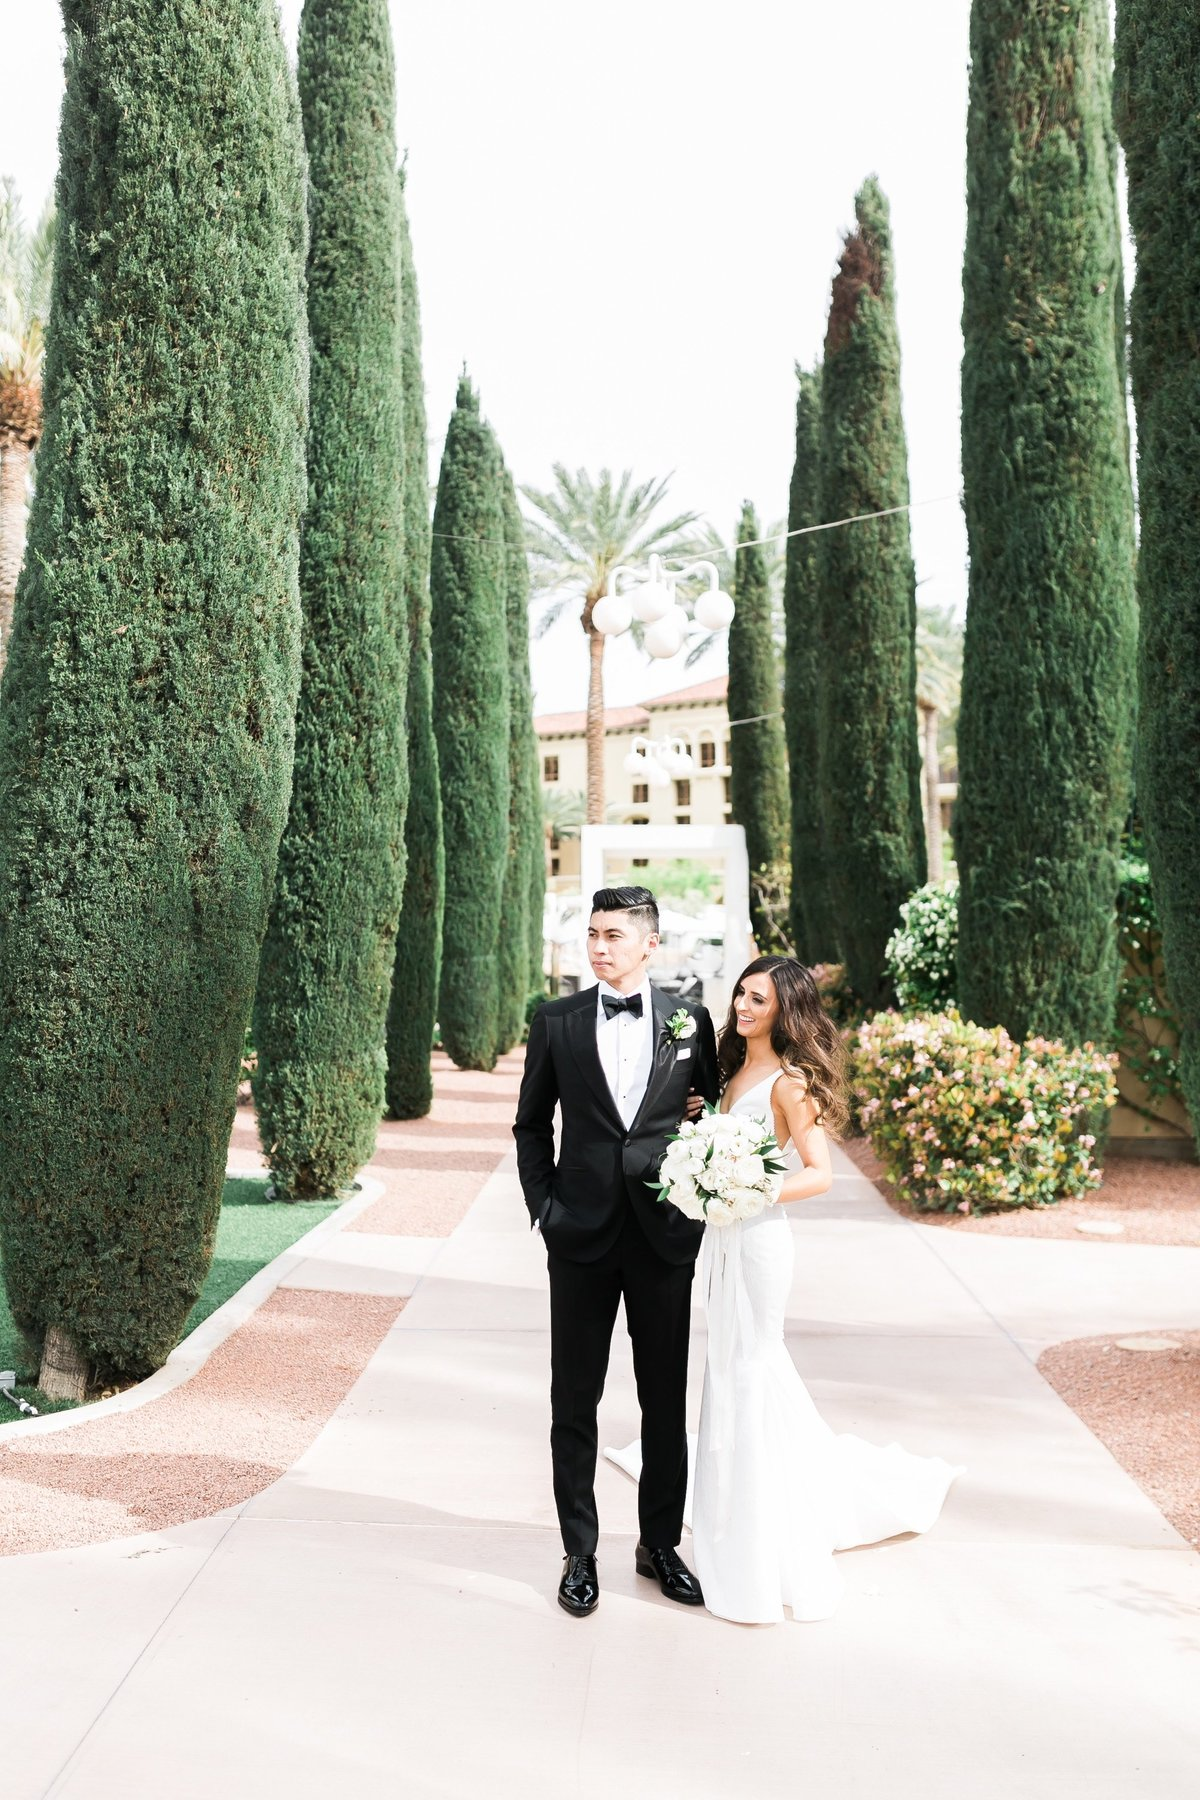 a photo of a bride and groom on a walkway that is lined by large topiaries trees at a wedding at Green Valley Ranch in Las Vegas